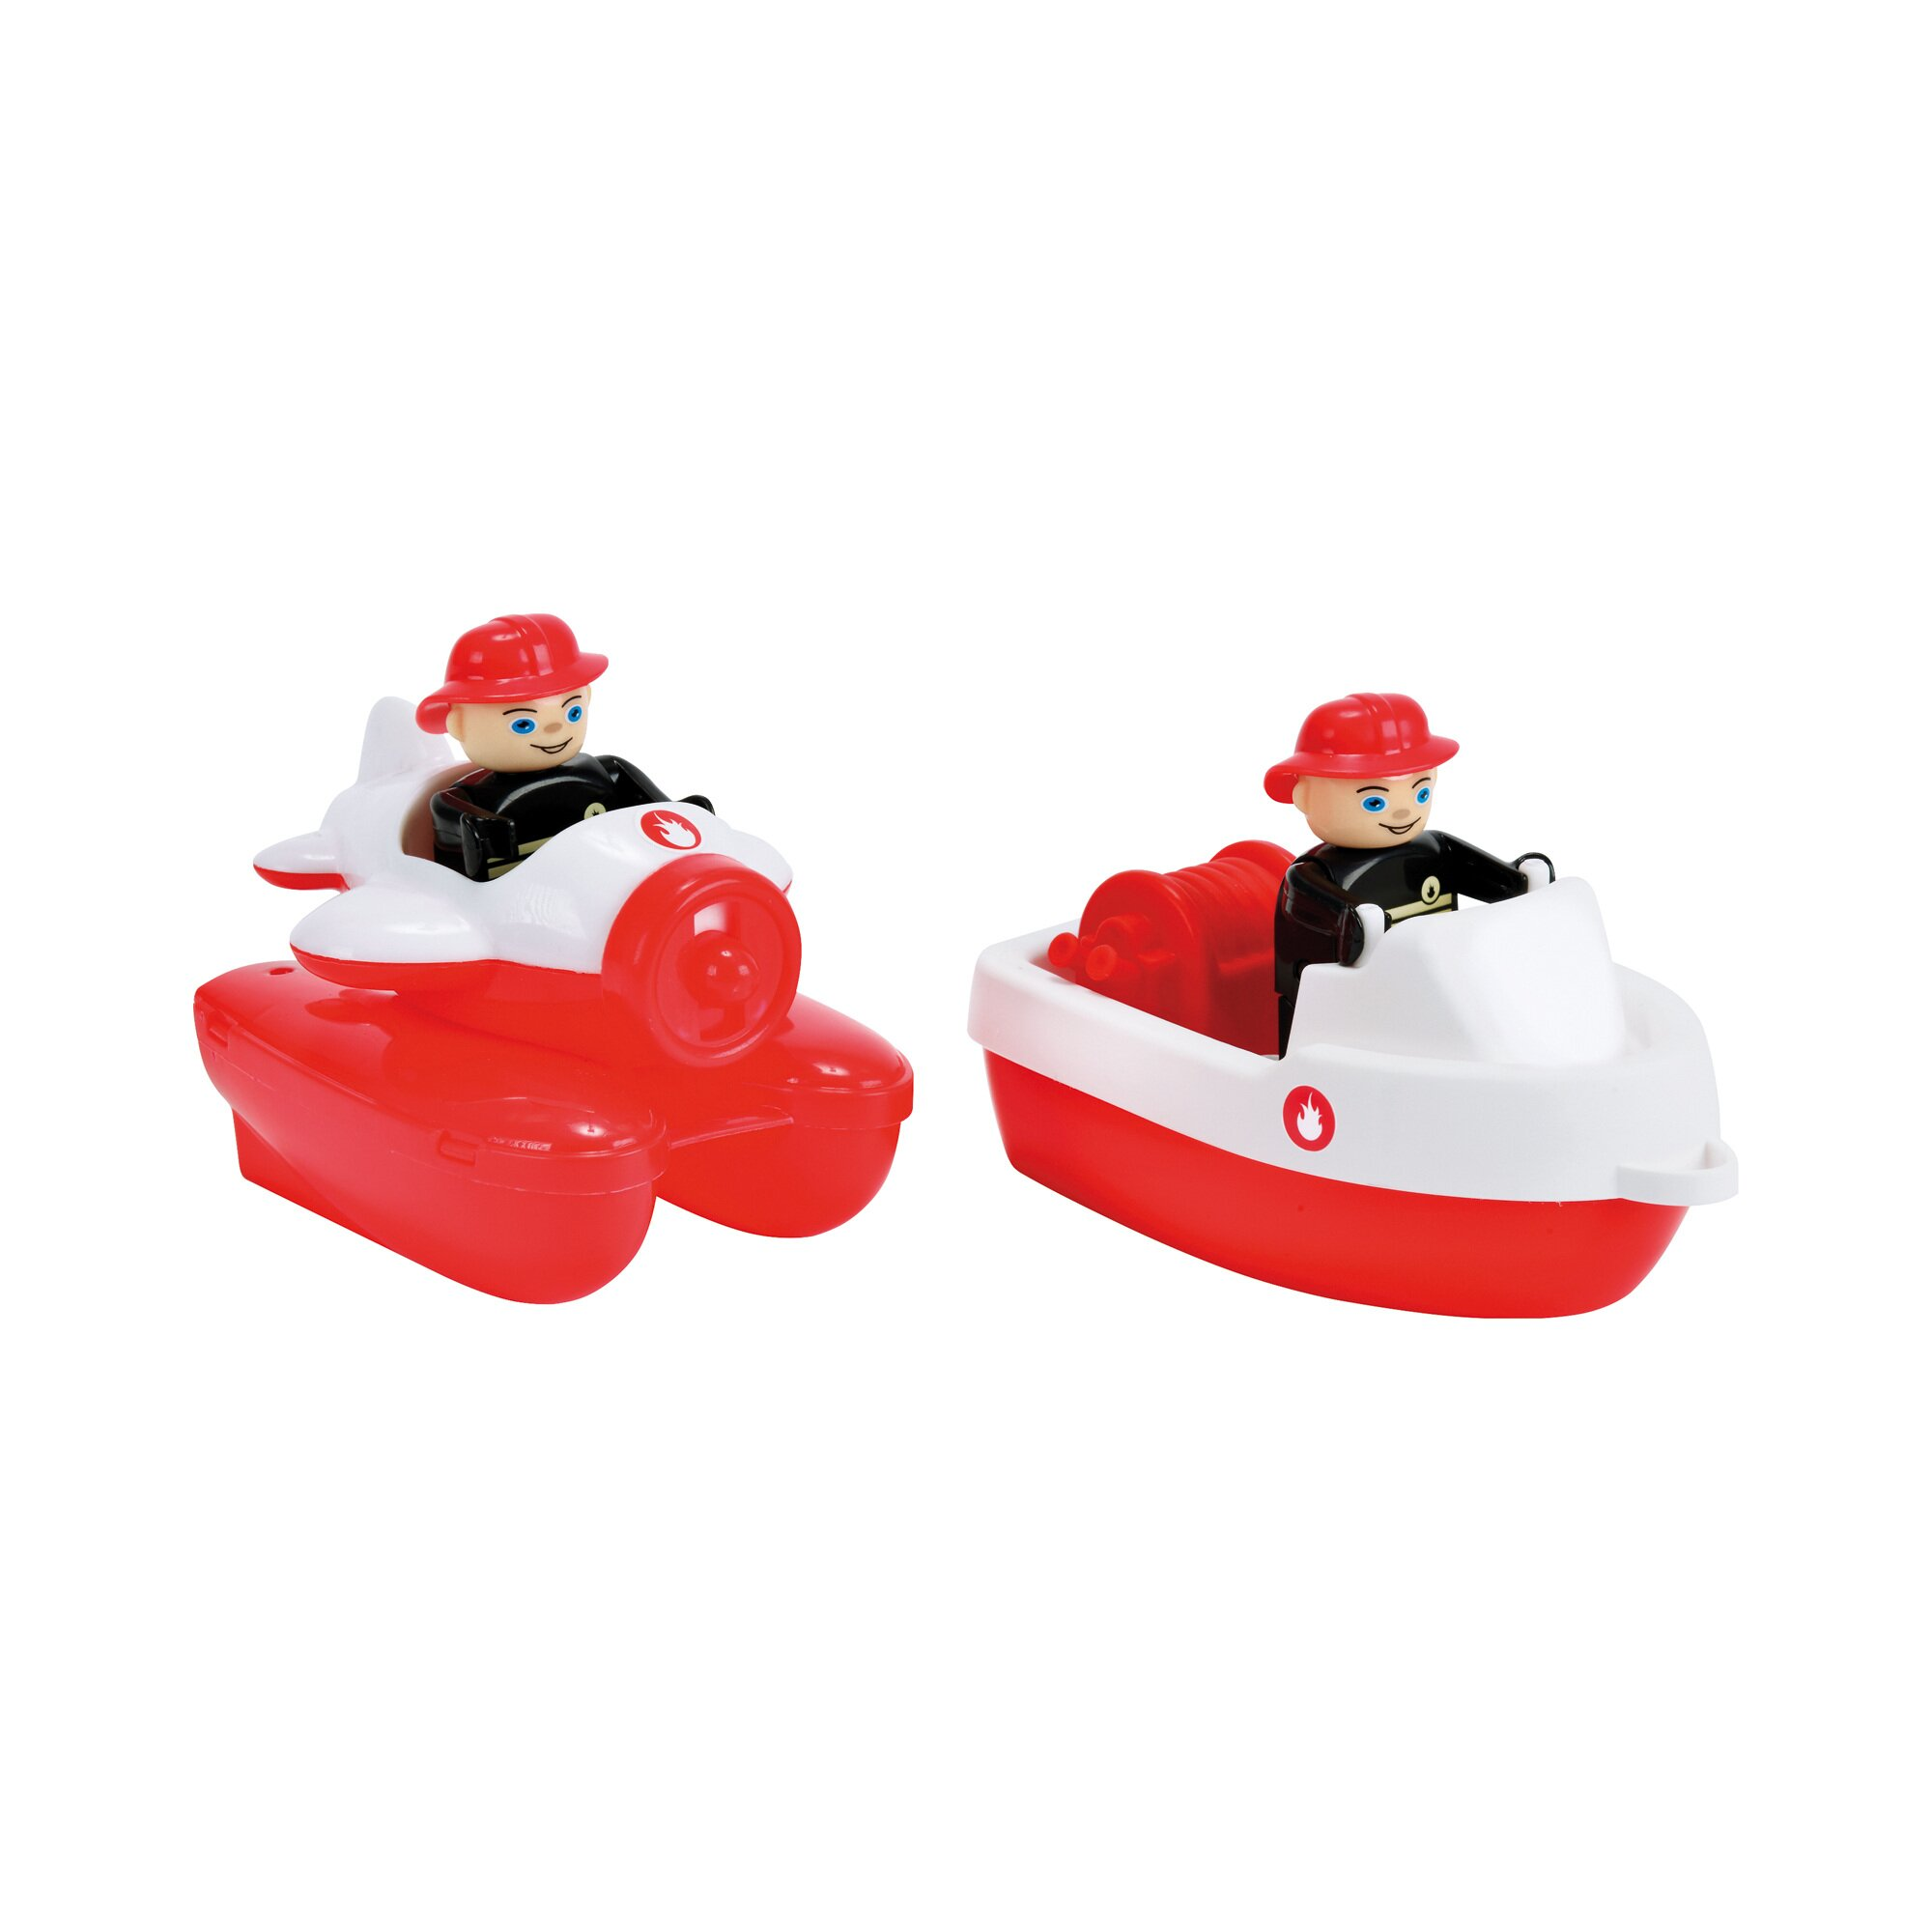 Big Badespielzeug Waterplay Fire-Boat-Set